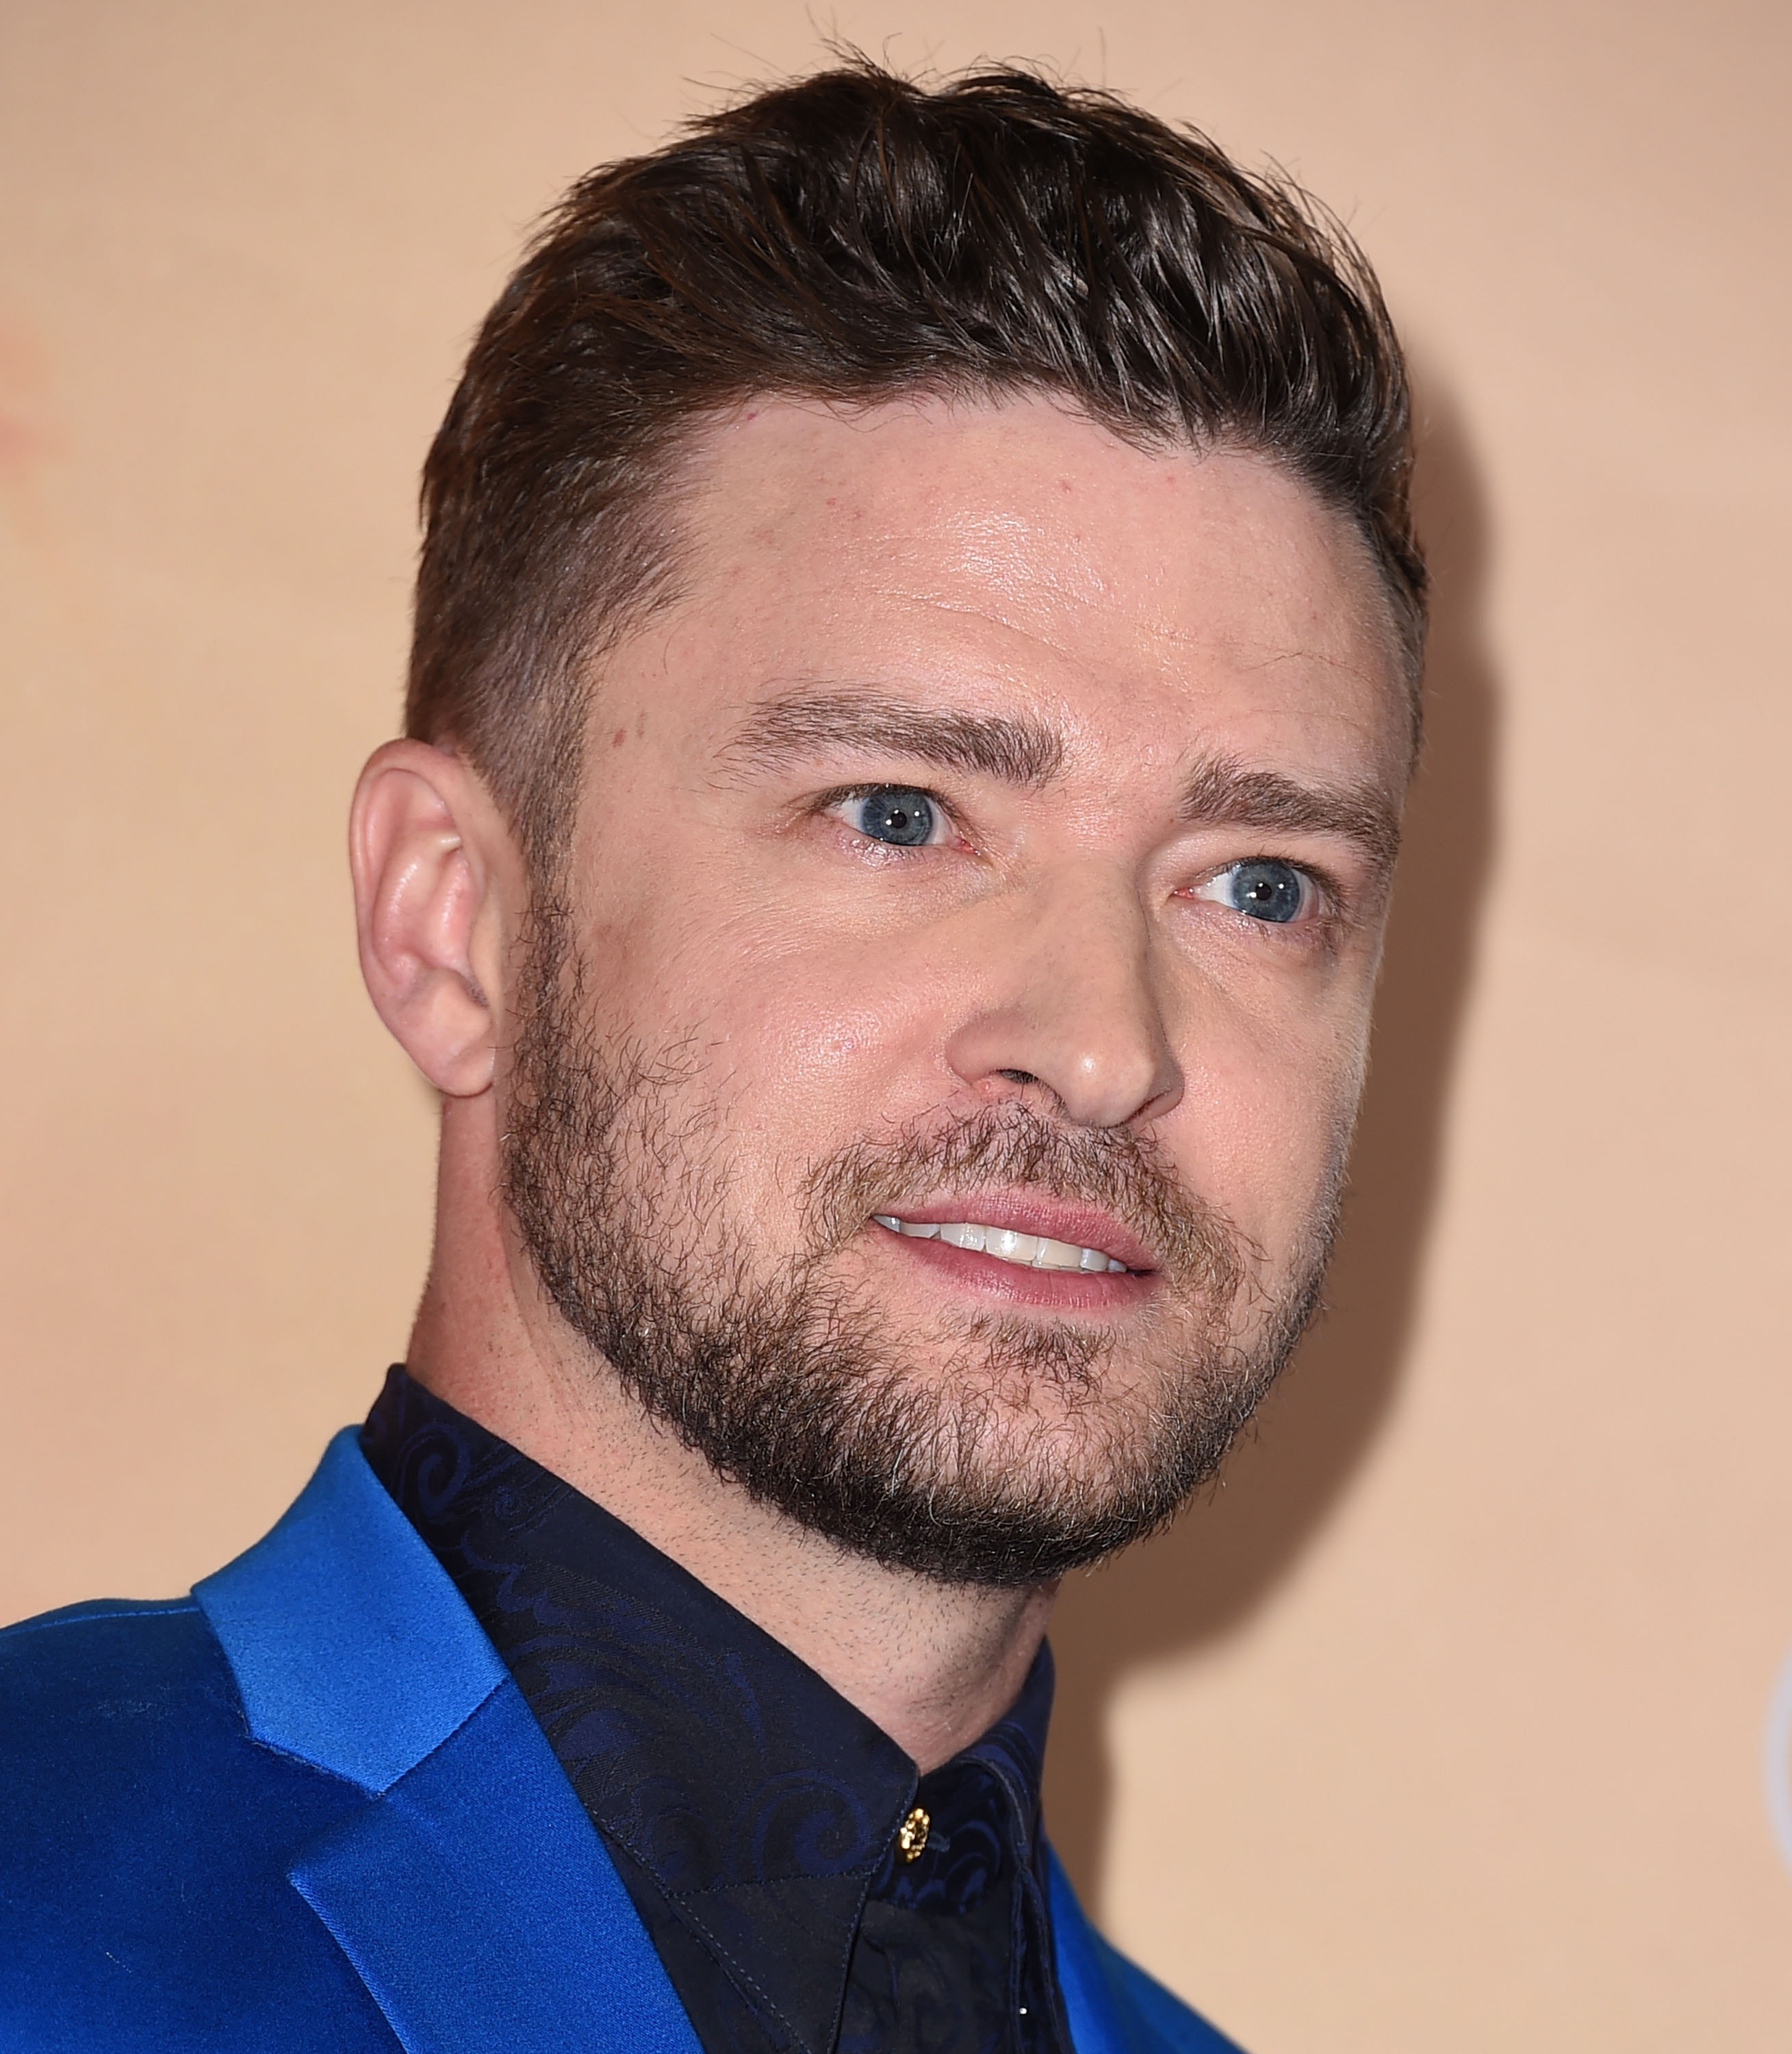 Justin Timberlake at the 2015 iHeartRadio Music Awards in Los Angeles on March 29, 2015.